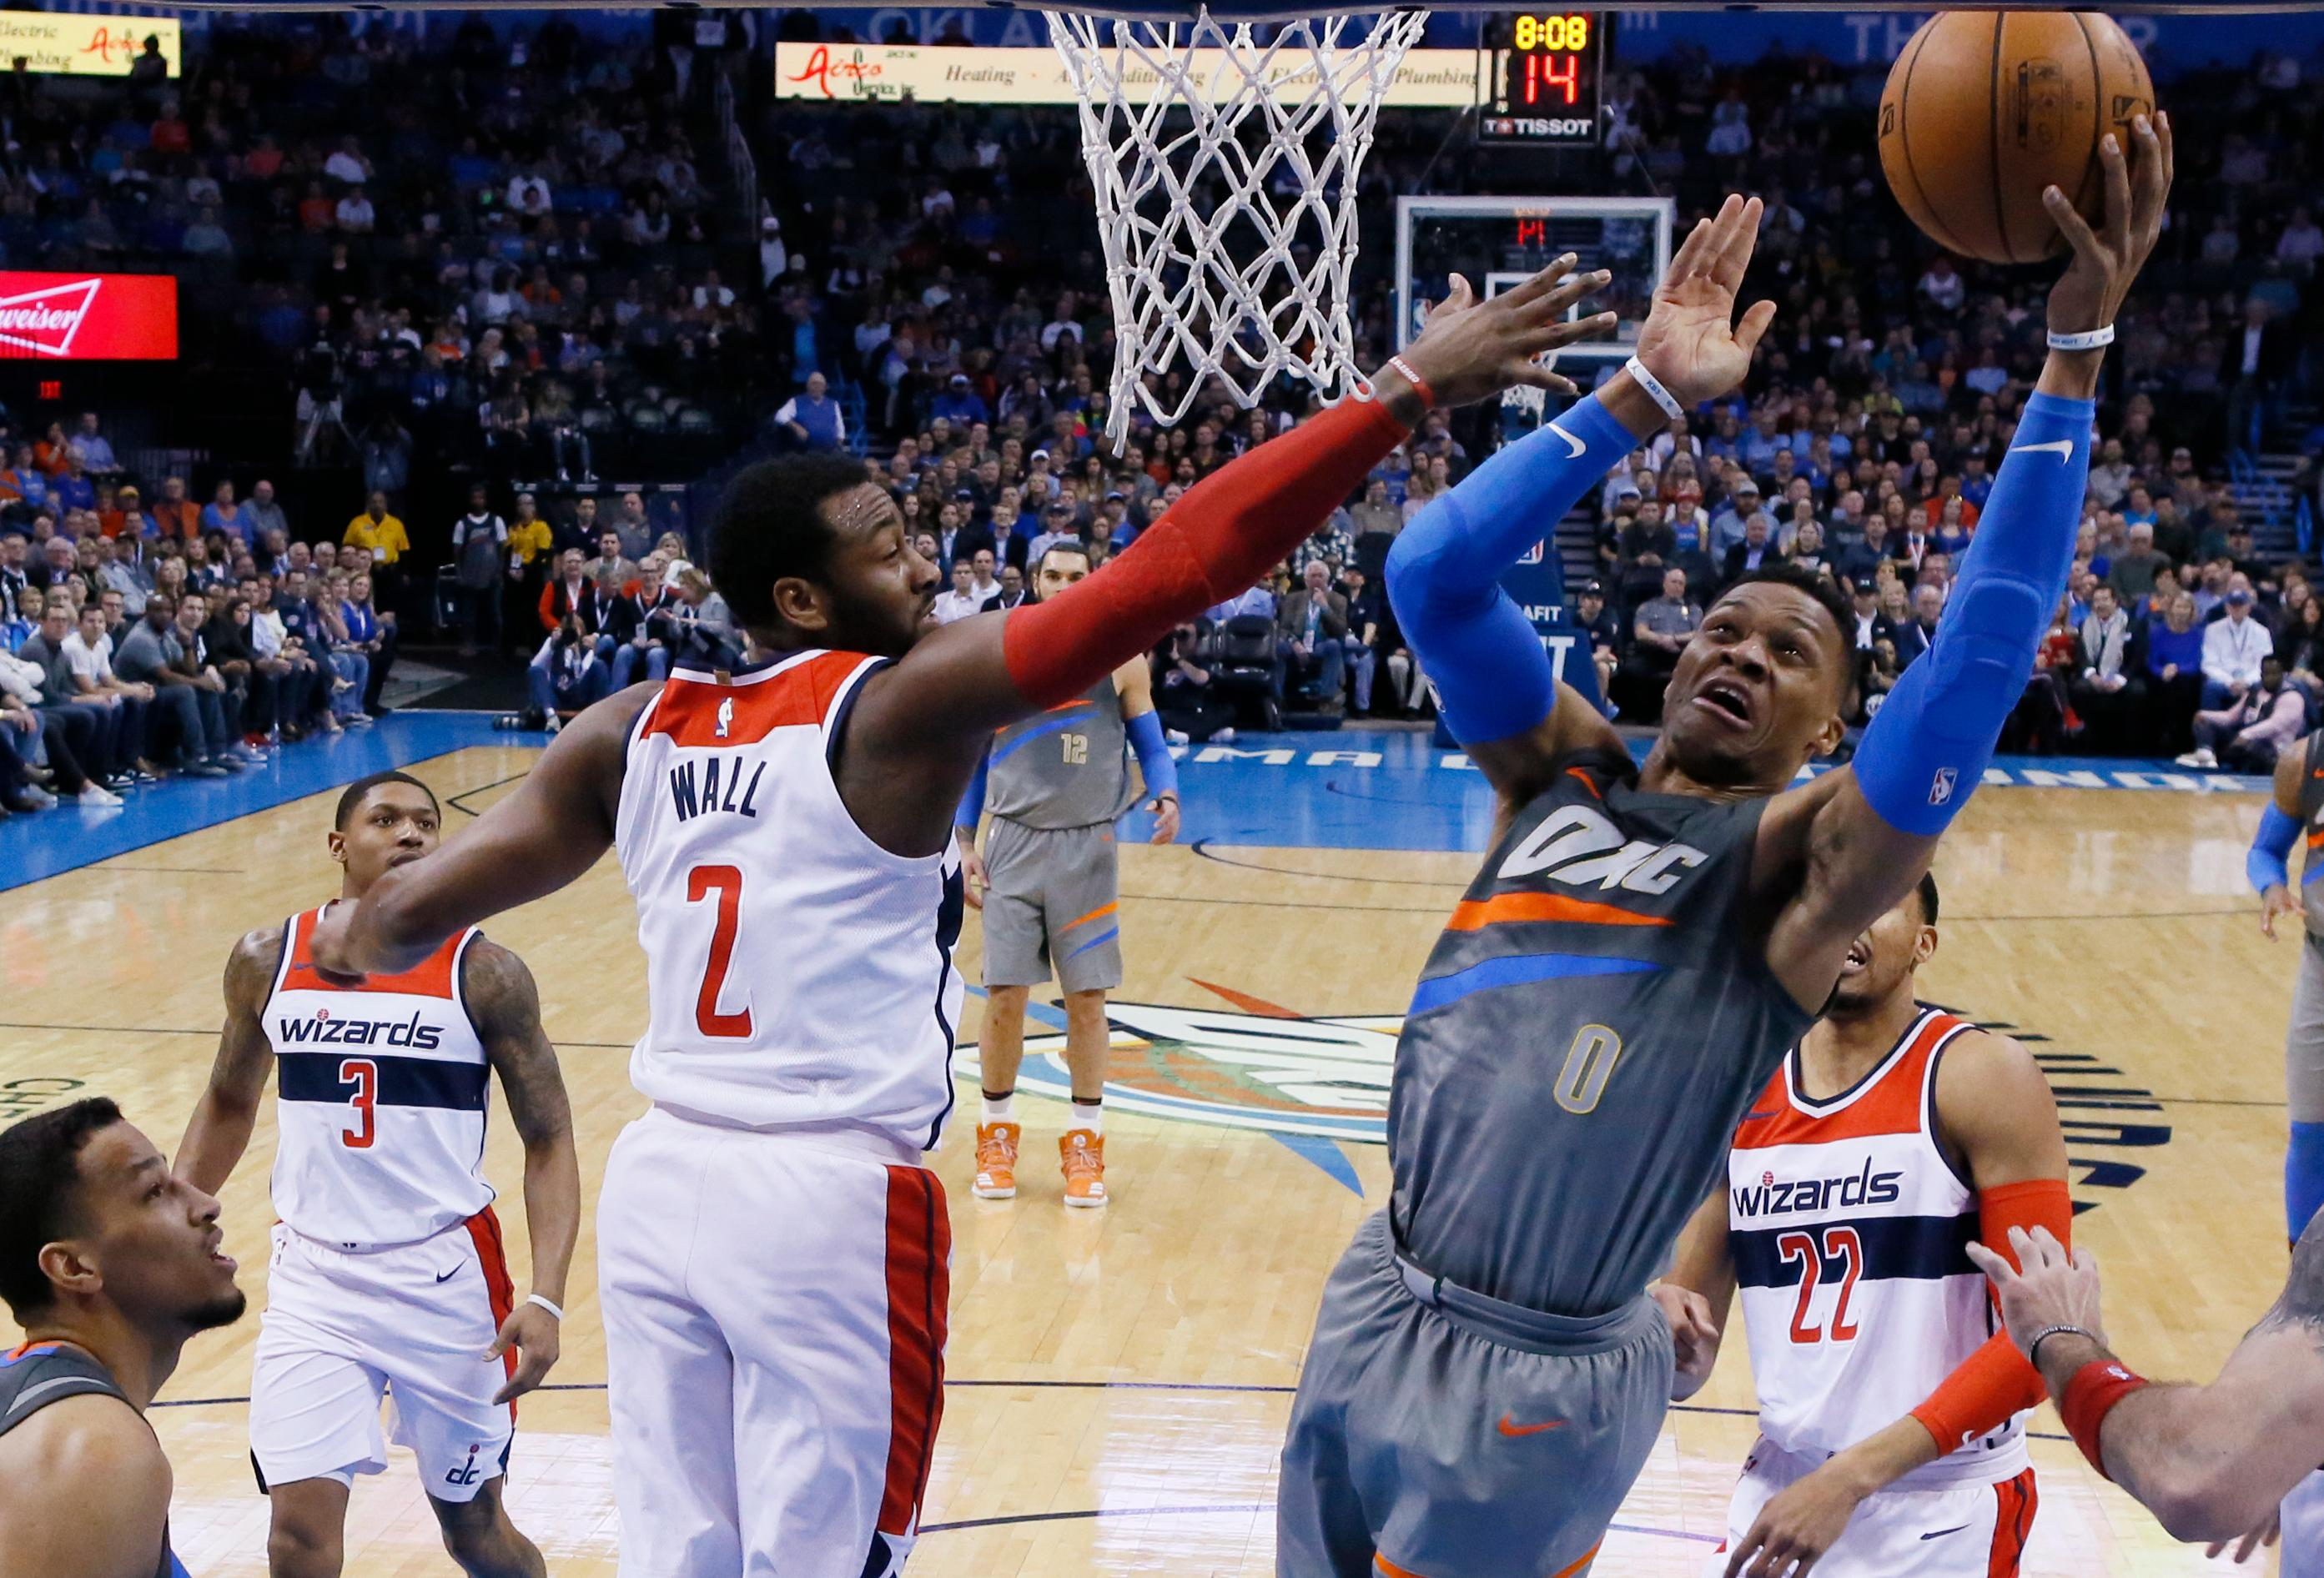 Oklahoma City Thunder guard Russell Westbrook (0) shoots as Washington Wizards guard John Wall (2) defends during the first quarter of an NBA basketball game in Oklahoma City, Thursday, Jan. 25, 2018. (AP Photo/Sue Ogrocki)